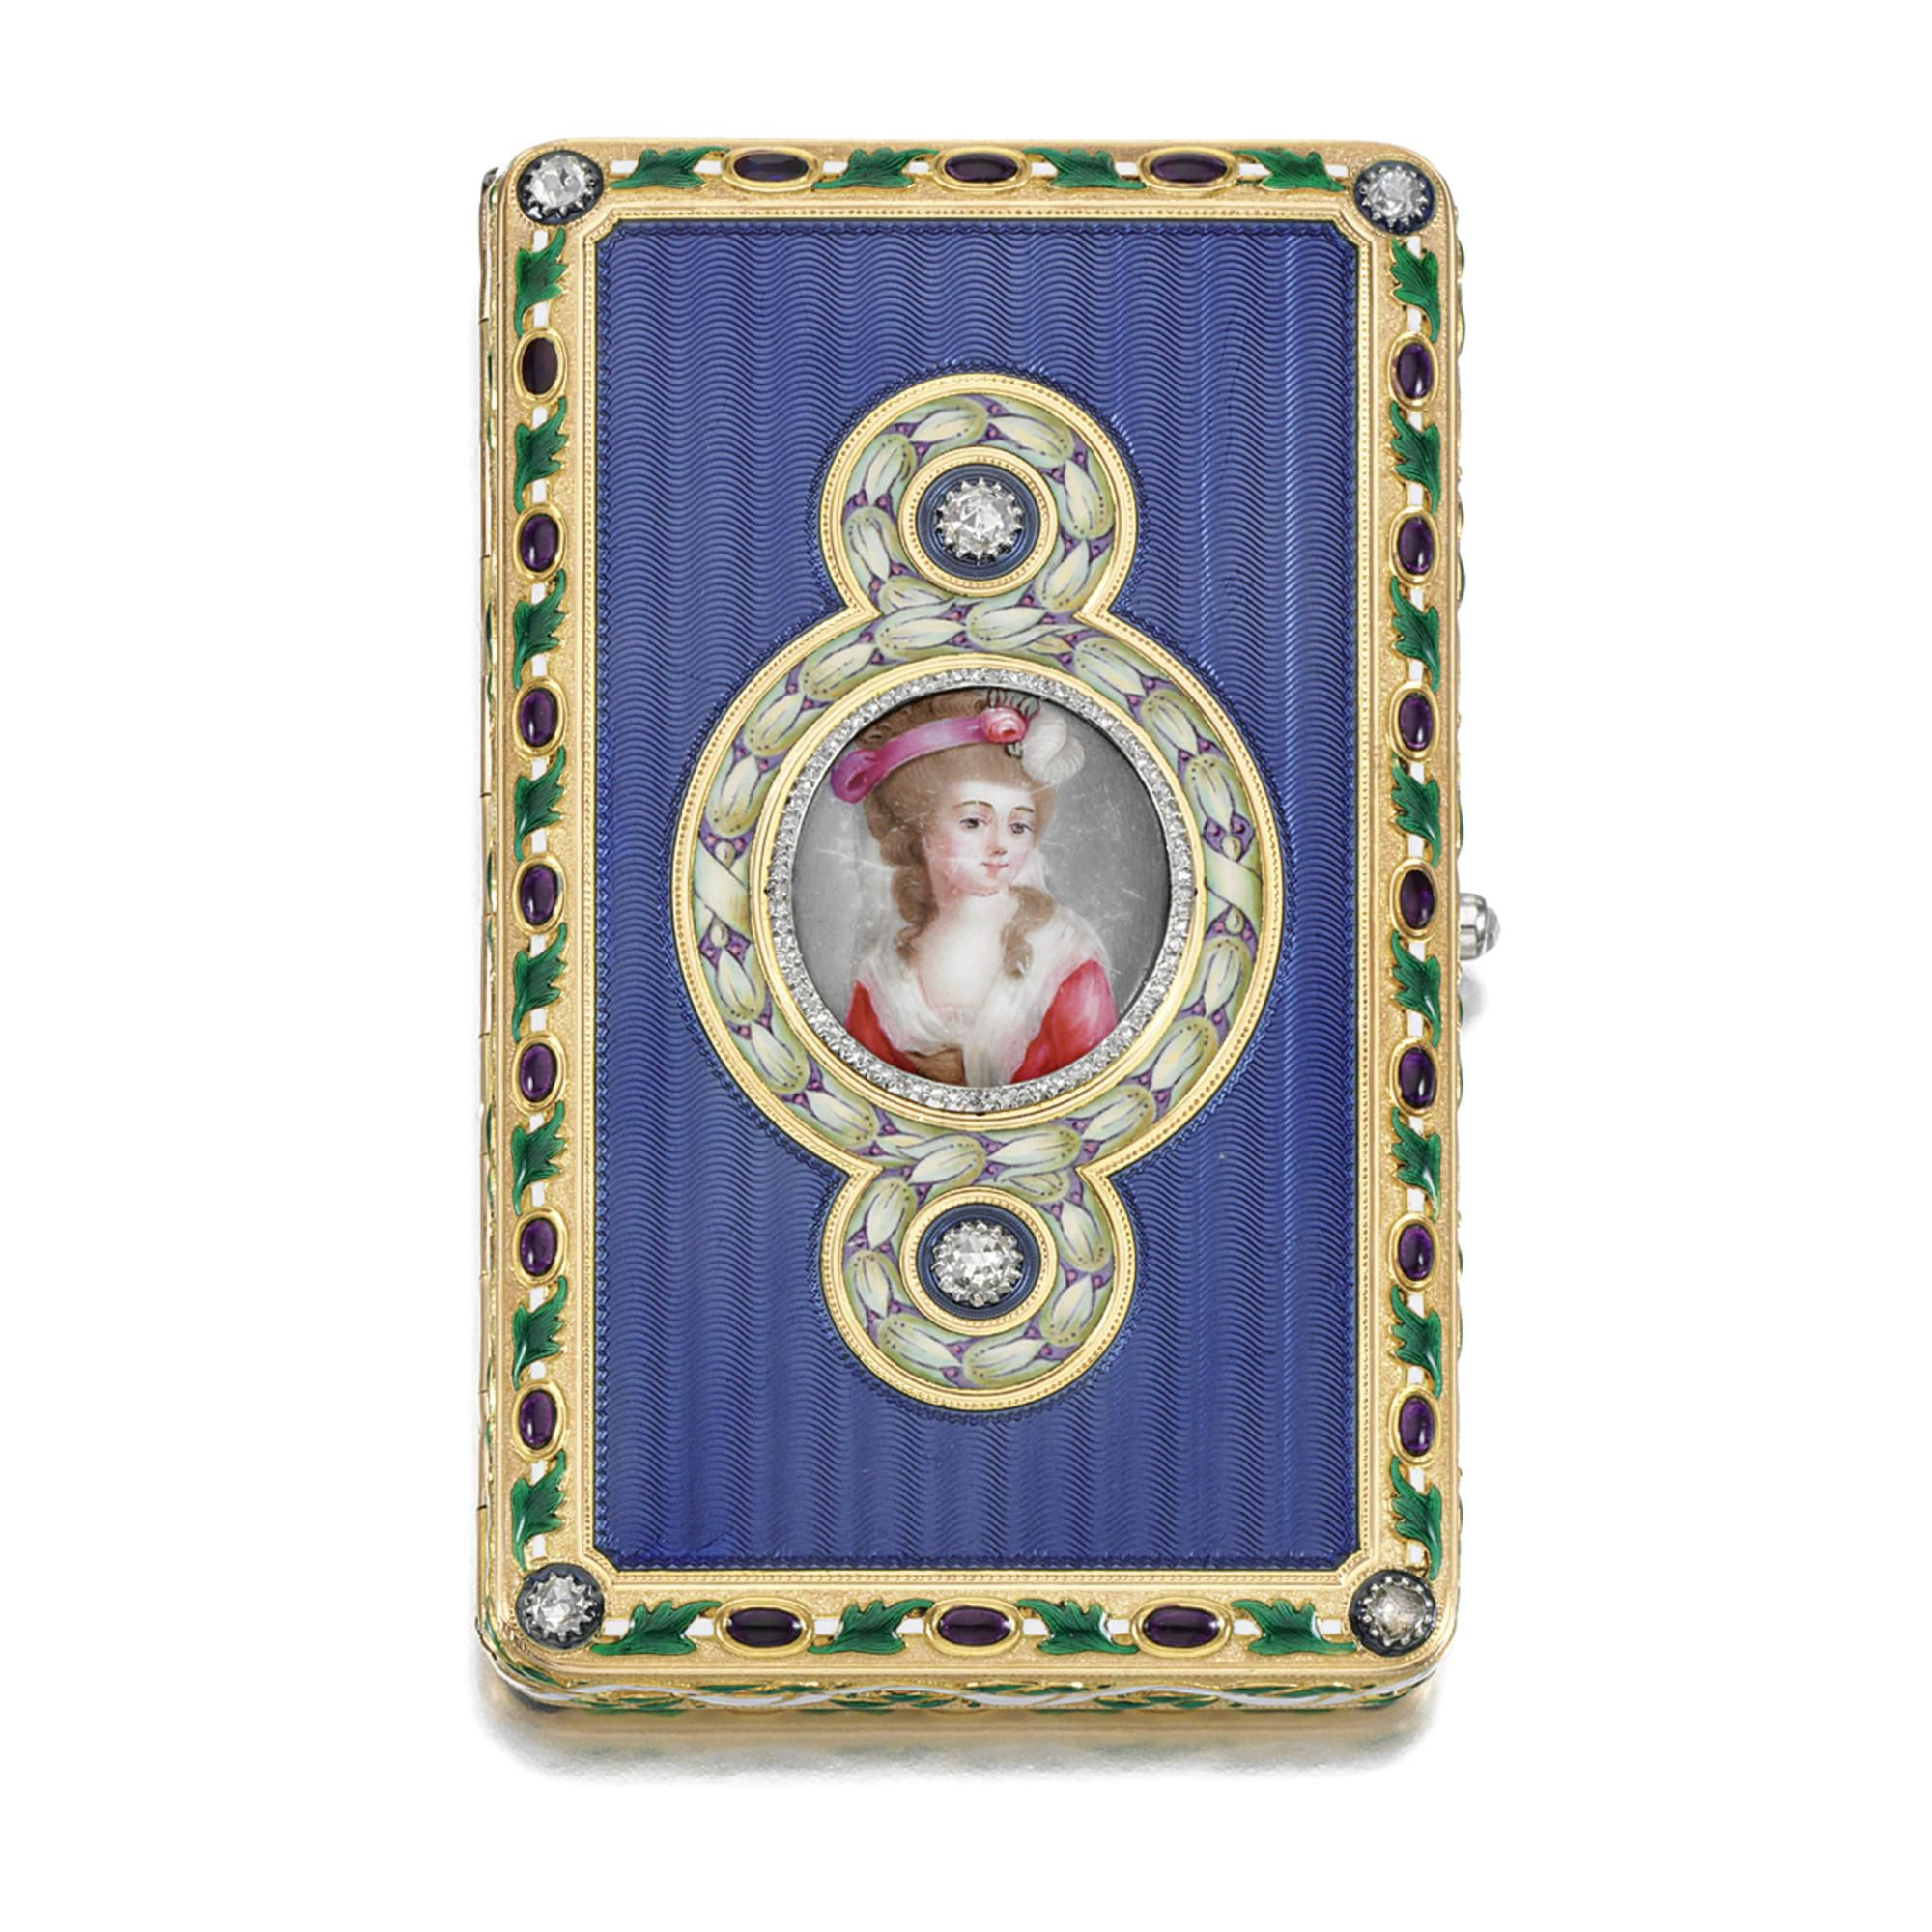 ENAMEL AND DIAMOND CIGARETTE CASE, PROBABLY CHARLES JACQUEAU, CARTIER, CIRCA 1910 The rectangular case to a central enamel portrait miniature depicting a lady 'Rosamond' within a frame of rose-cut diamonds encircled by a border of stylised flower heads in lilac and green enamel, to a guilloché cornflower blue enamel ground, the outer edge decorated with blue, white and green enamel, further applied with rose-cut diamonds